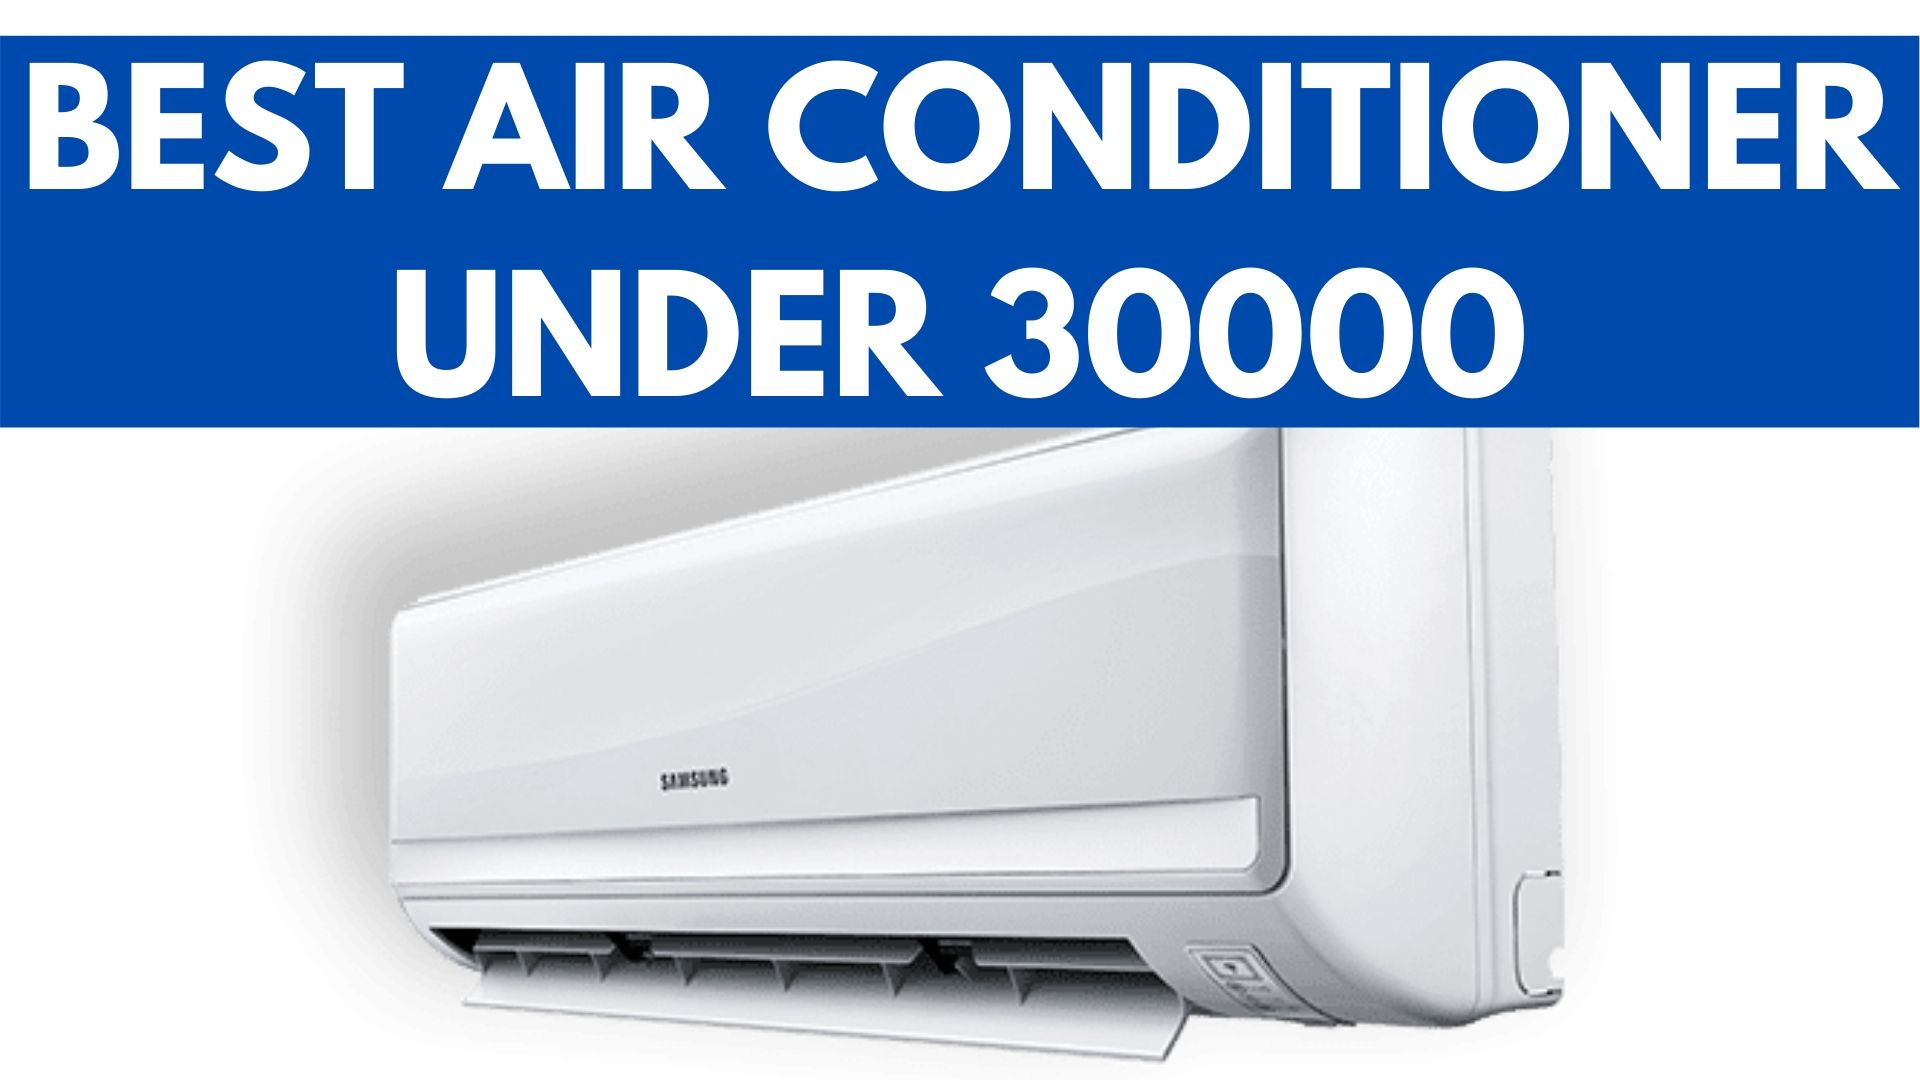 best air conditioner under 30000 rupees